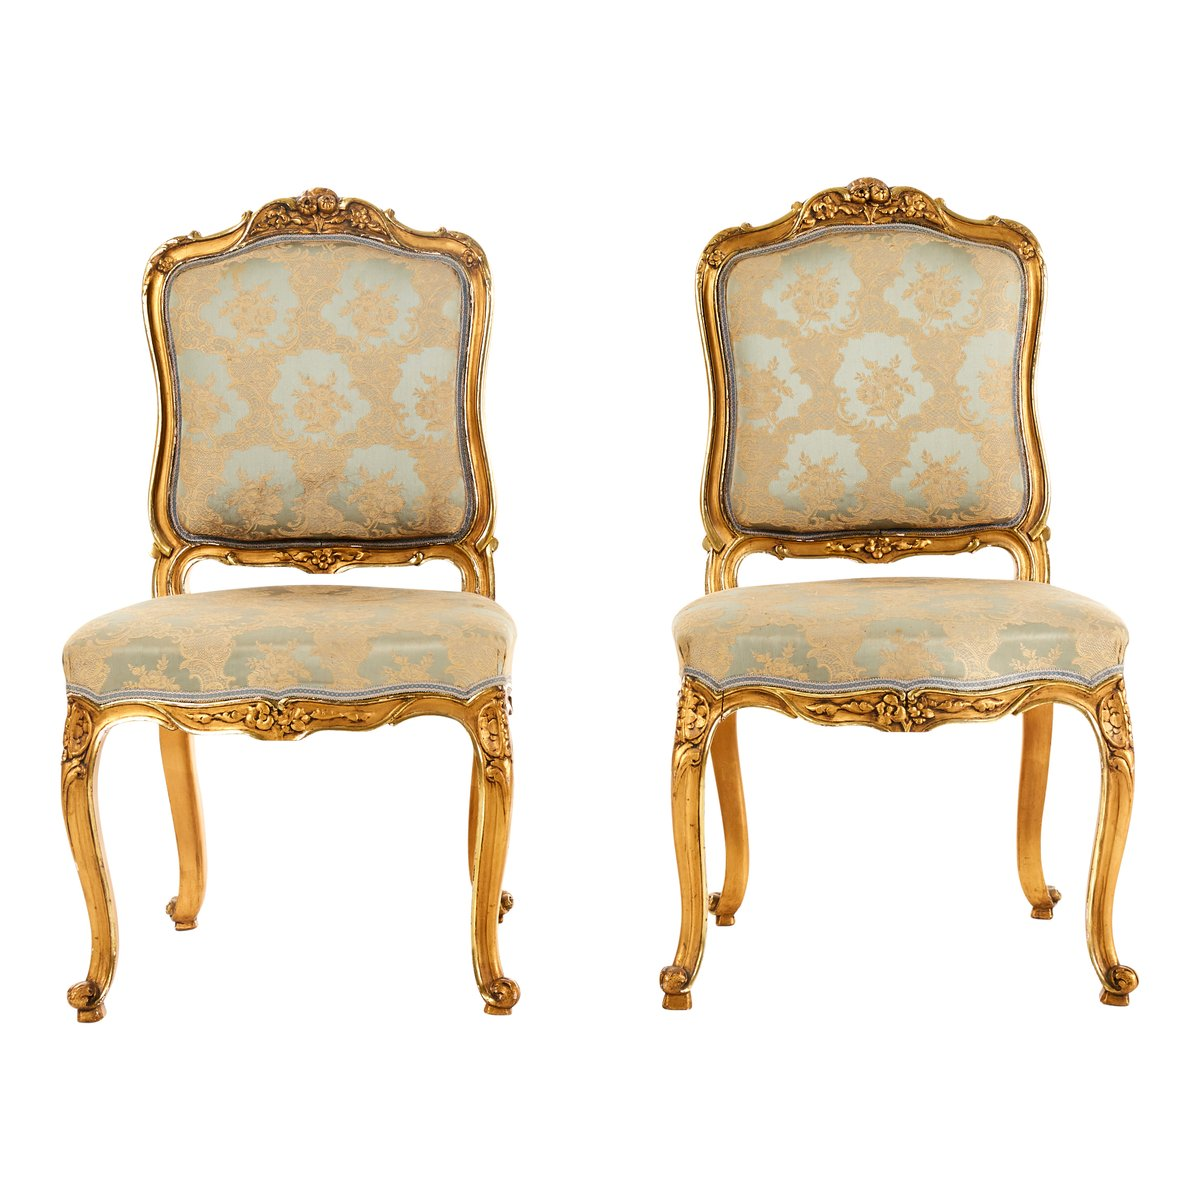 Antique Louis XV Style Chairs, Set Of 2